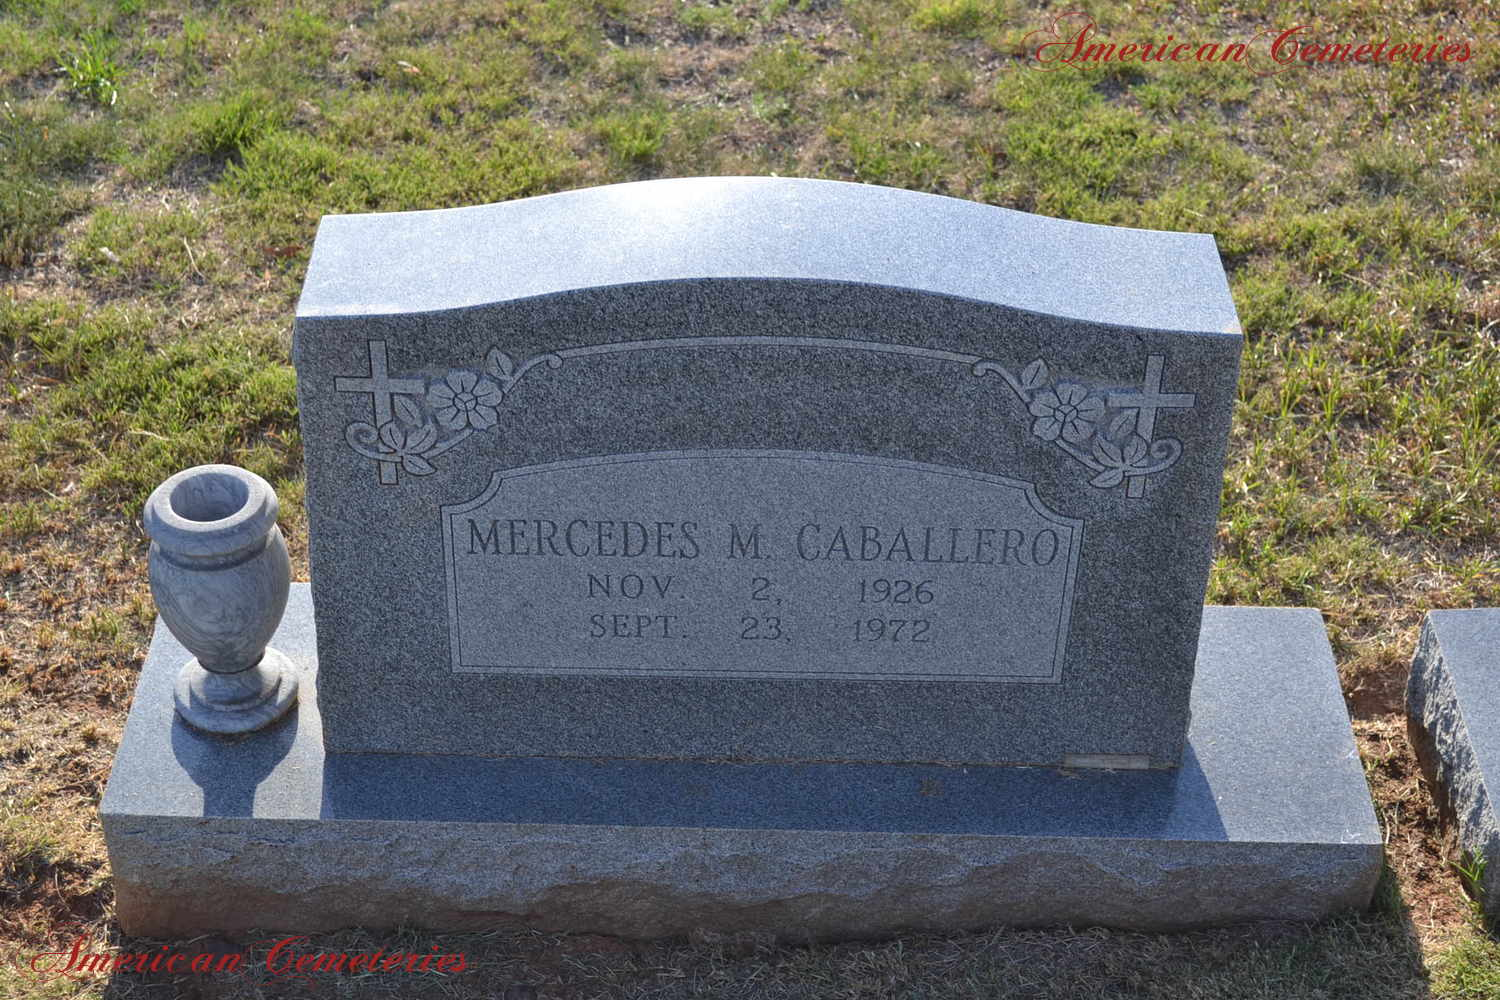 Gary krc schult and gary w schulz sacred heart cemetery for Mercedes benz wichita falls tx